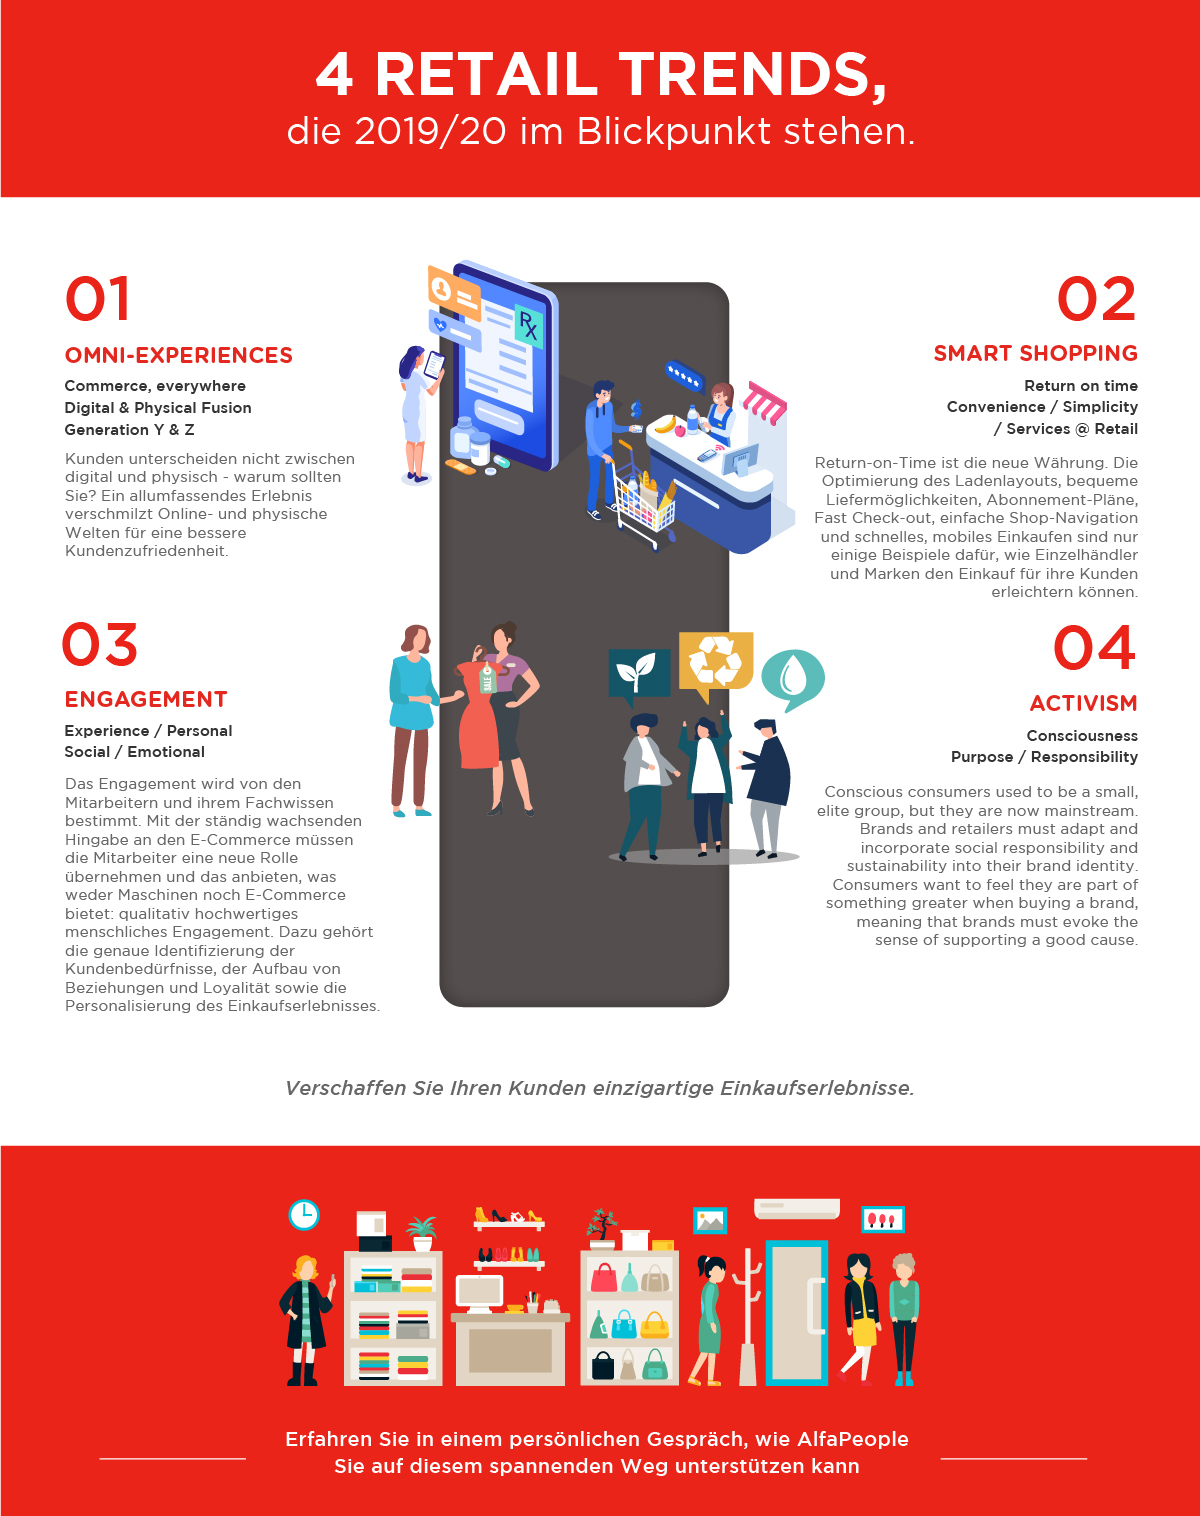 Infographic: 4 retail industry trends to watch out for in 2019/20